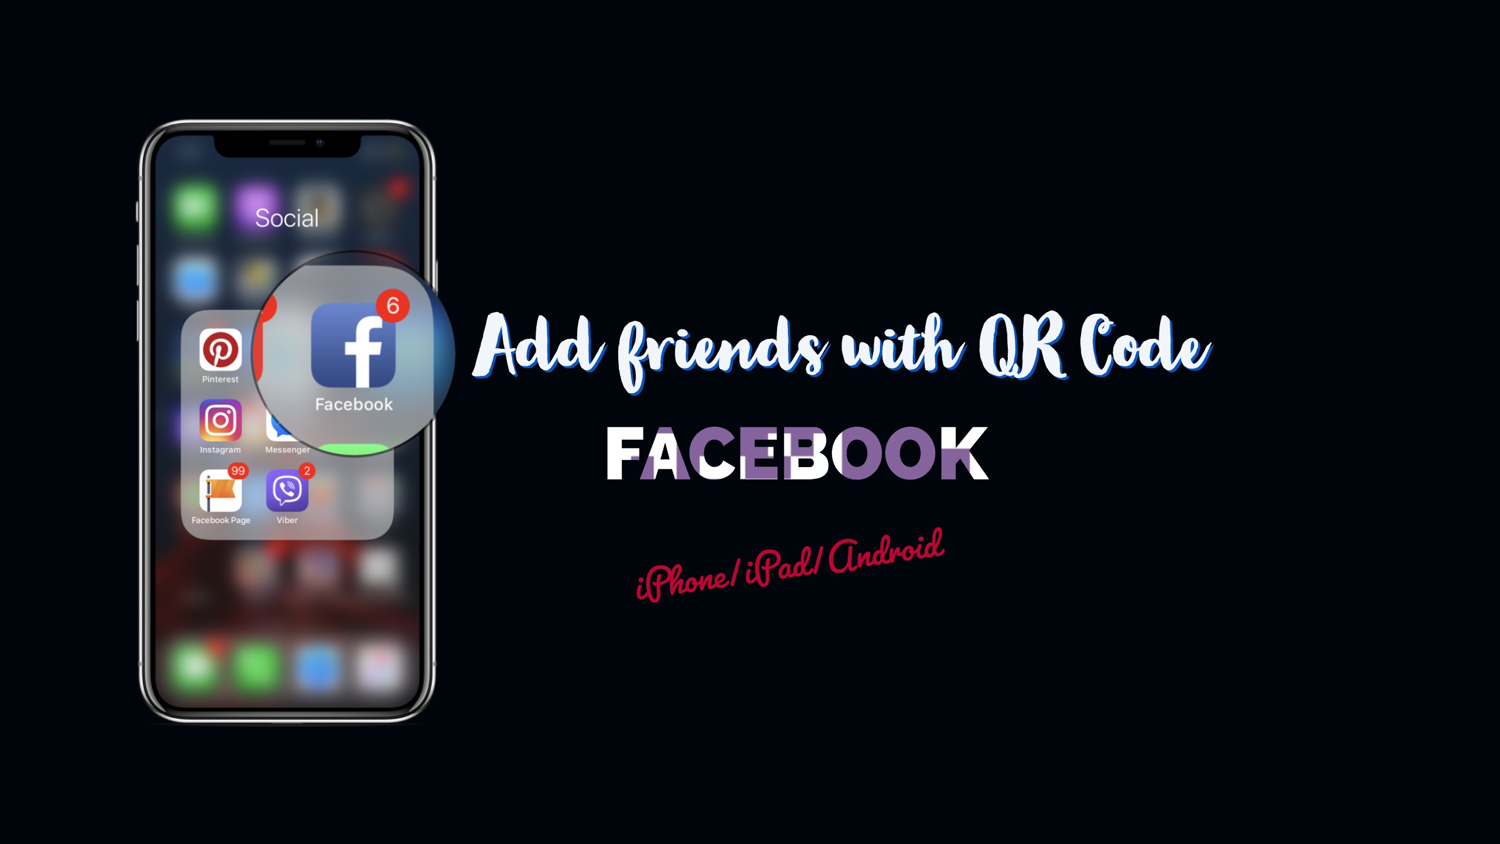 add-friends-on-facebook-with-qr-code